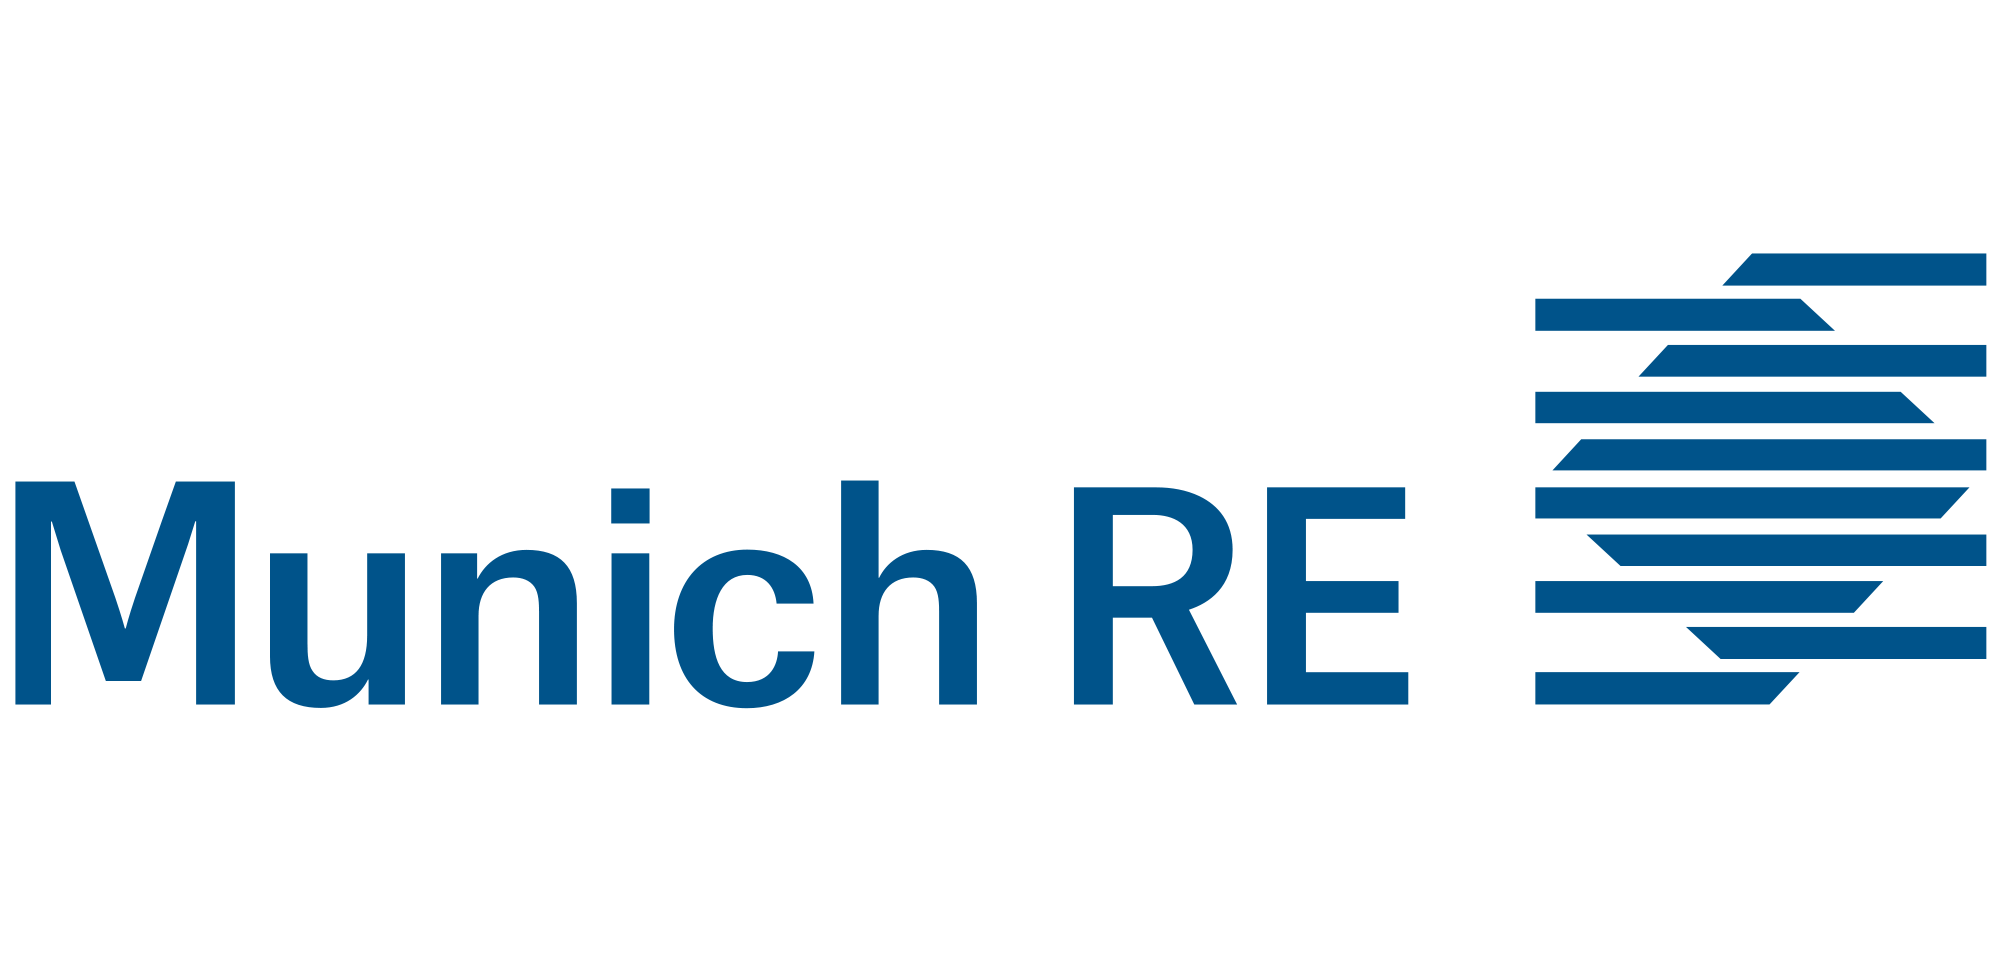 More about Munich Re